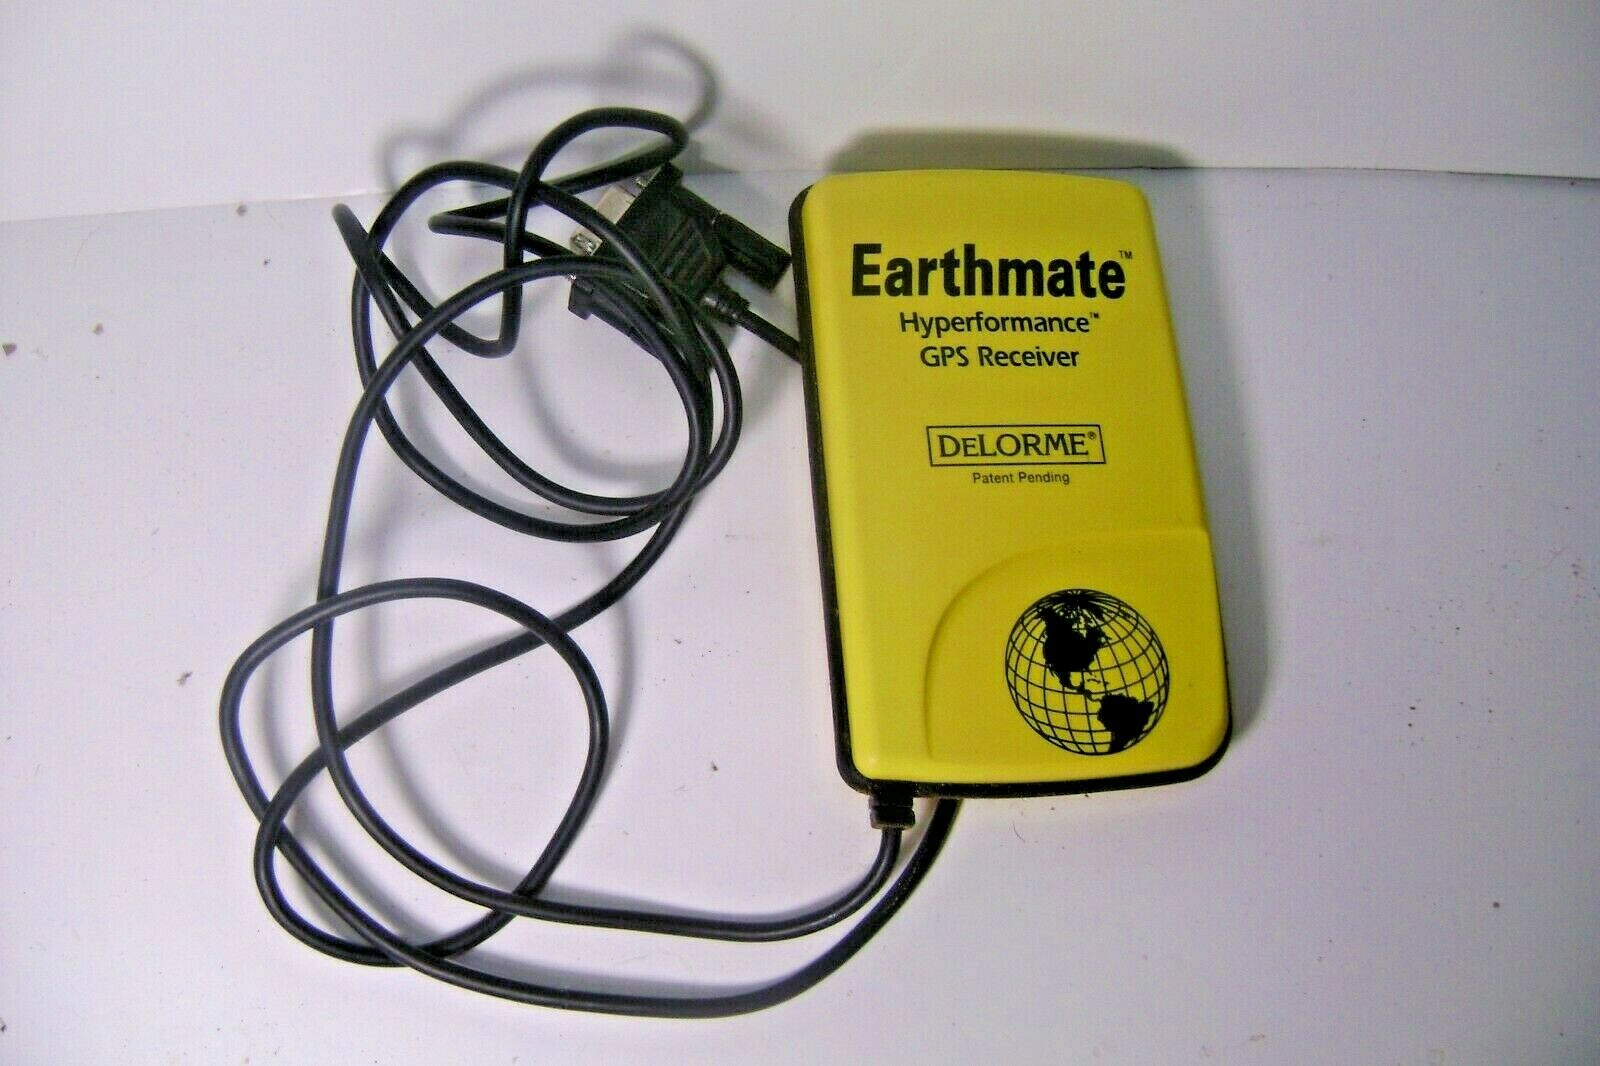 DeLorme Earthmate Hyperformance GPS Receiver